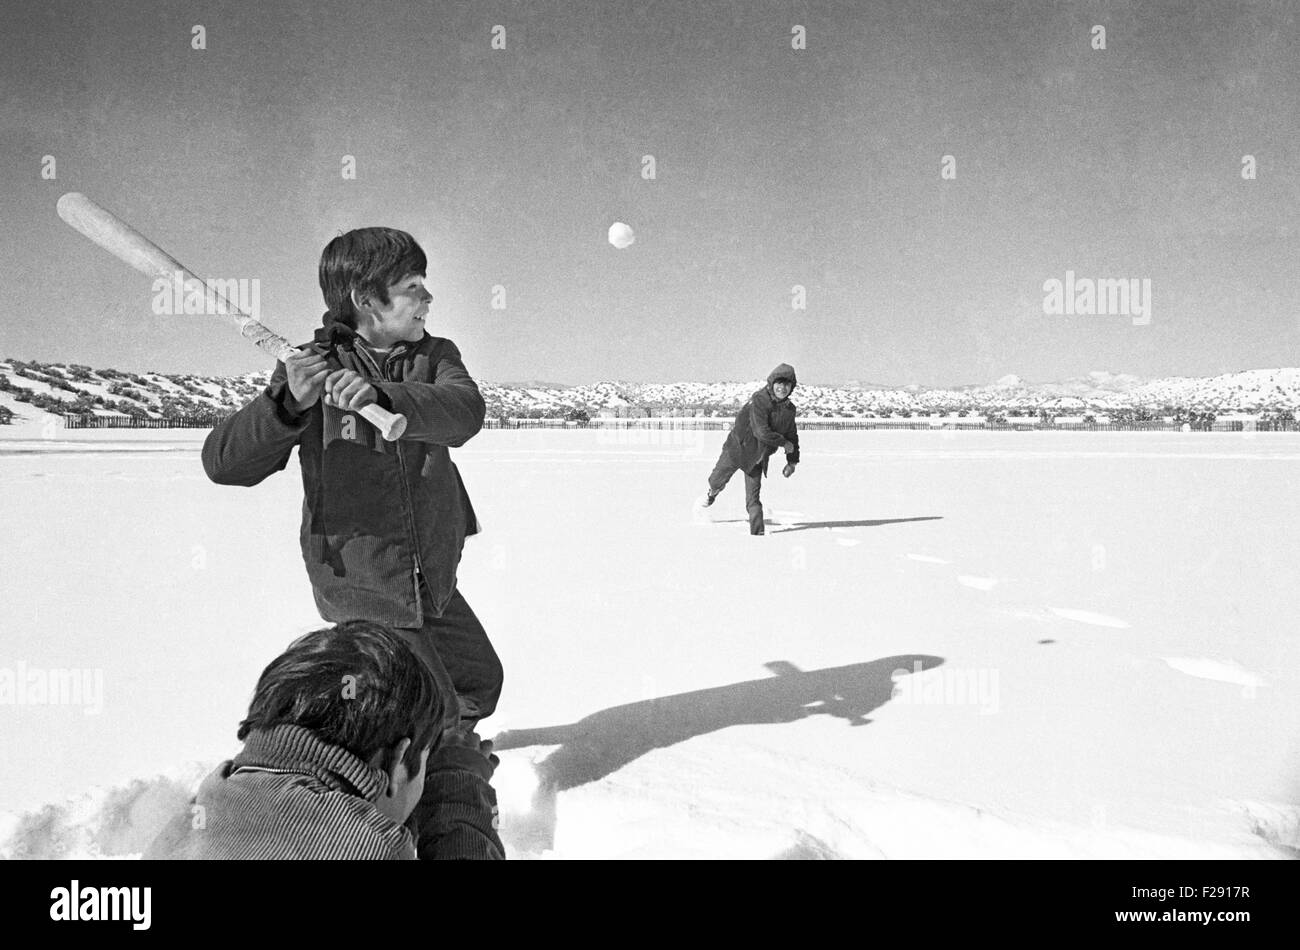 Cochiti Pueblo Indian boys playing baseball using a snowball on a winter day in 1970, Cochiti Pueblo, New Mexico - Stock Image